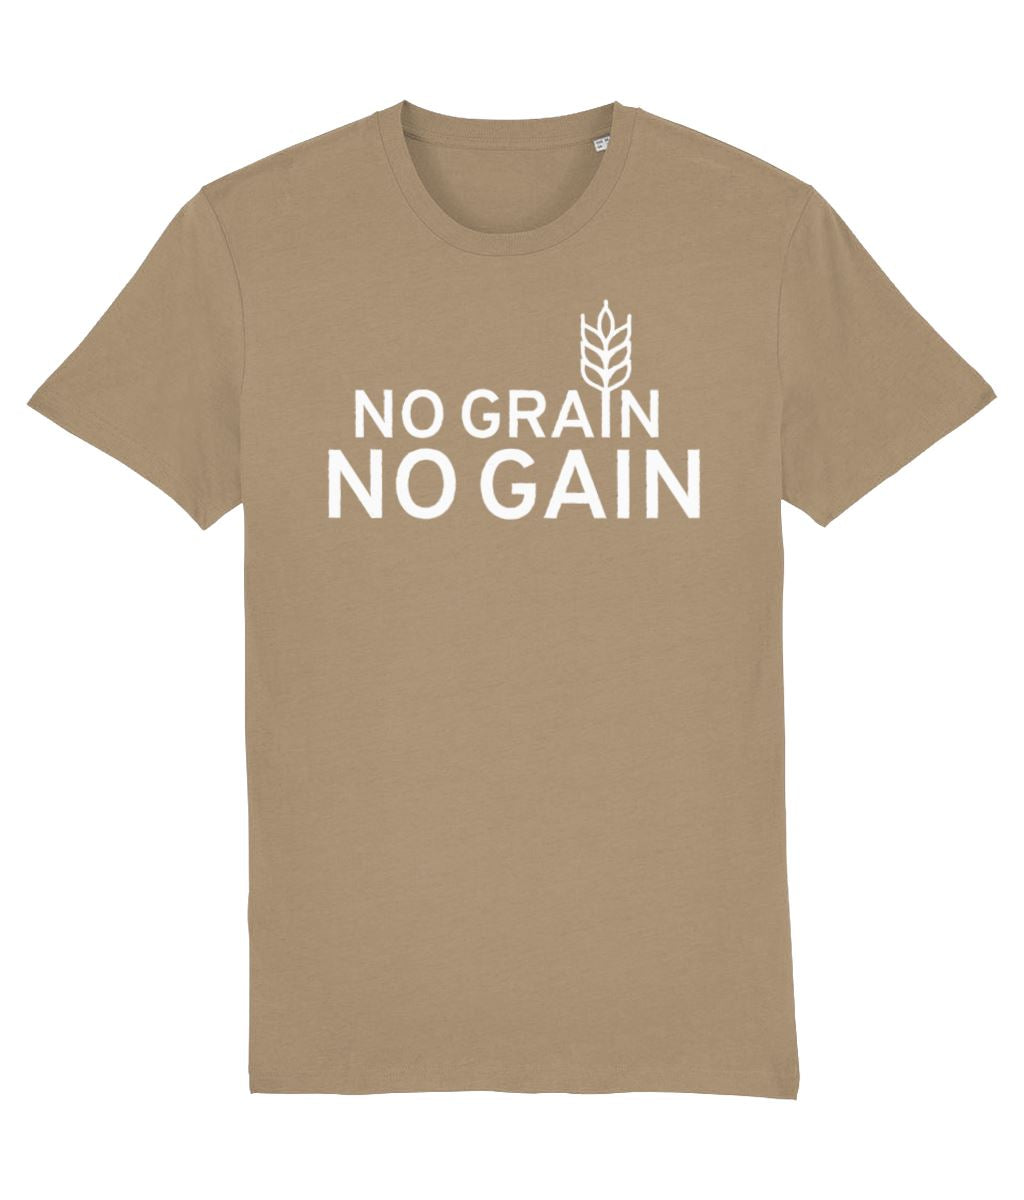 """No Grain, No Gain"" Vegan T-Shirt - 100% Organic Cotton (Unisex) - Dark Clothing Vegan Original Camel X-Small"